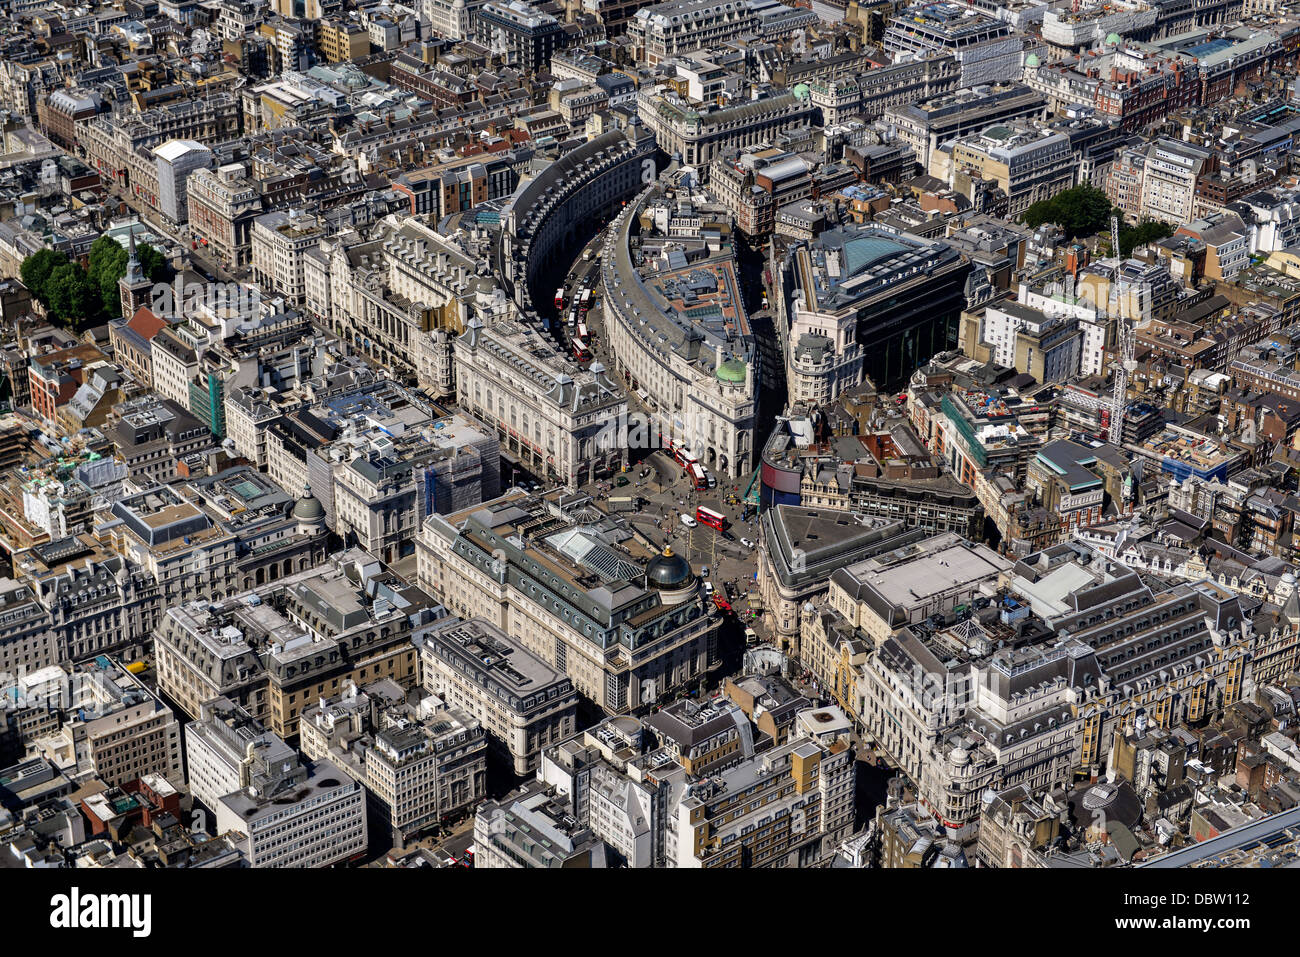 Aerial photograph of Regent Street and Surrounding Area. - Stock Image